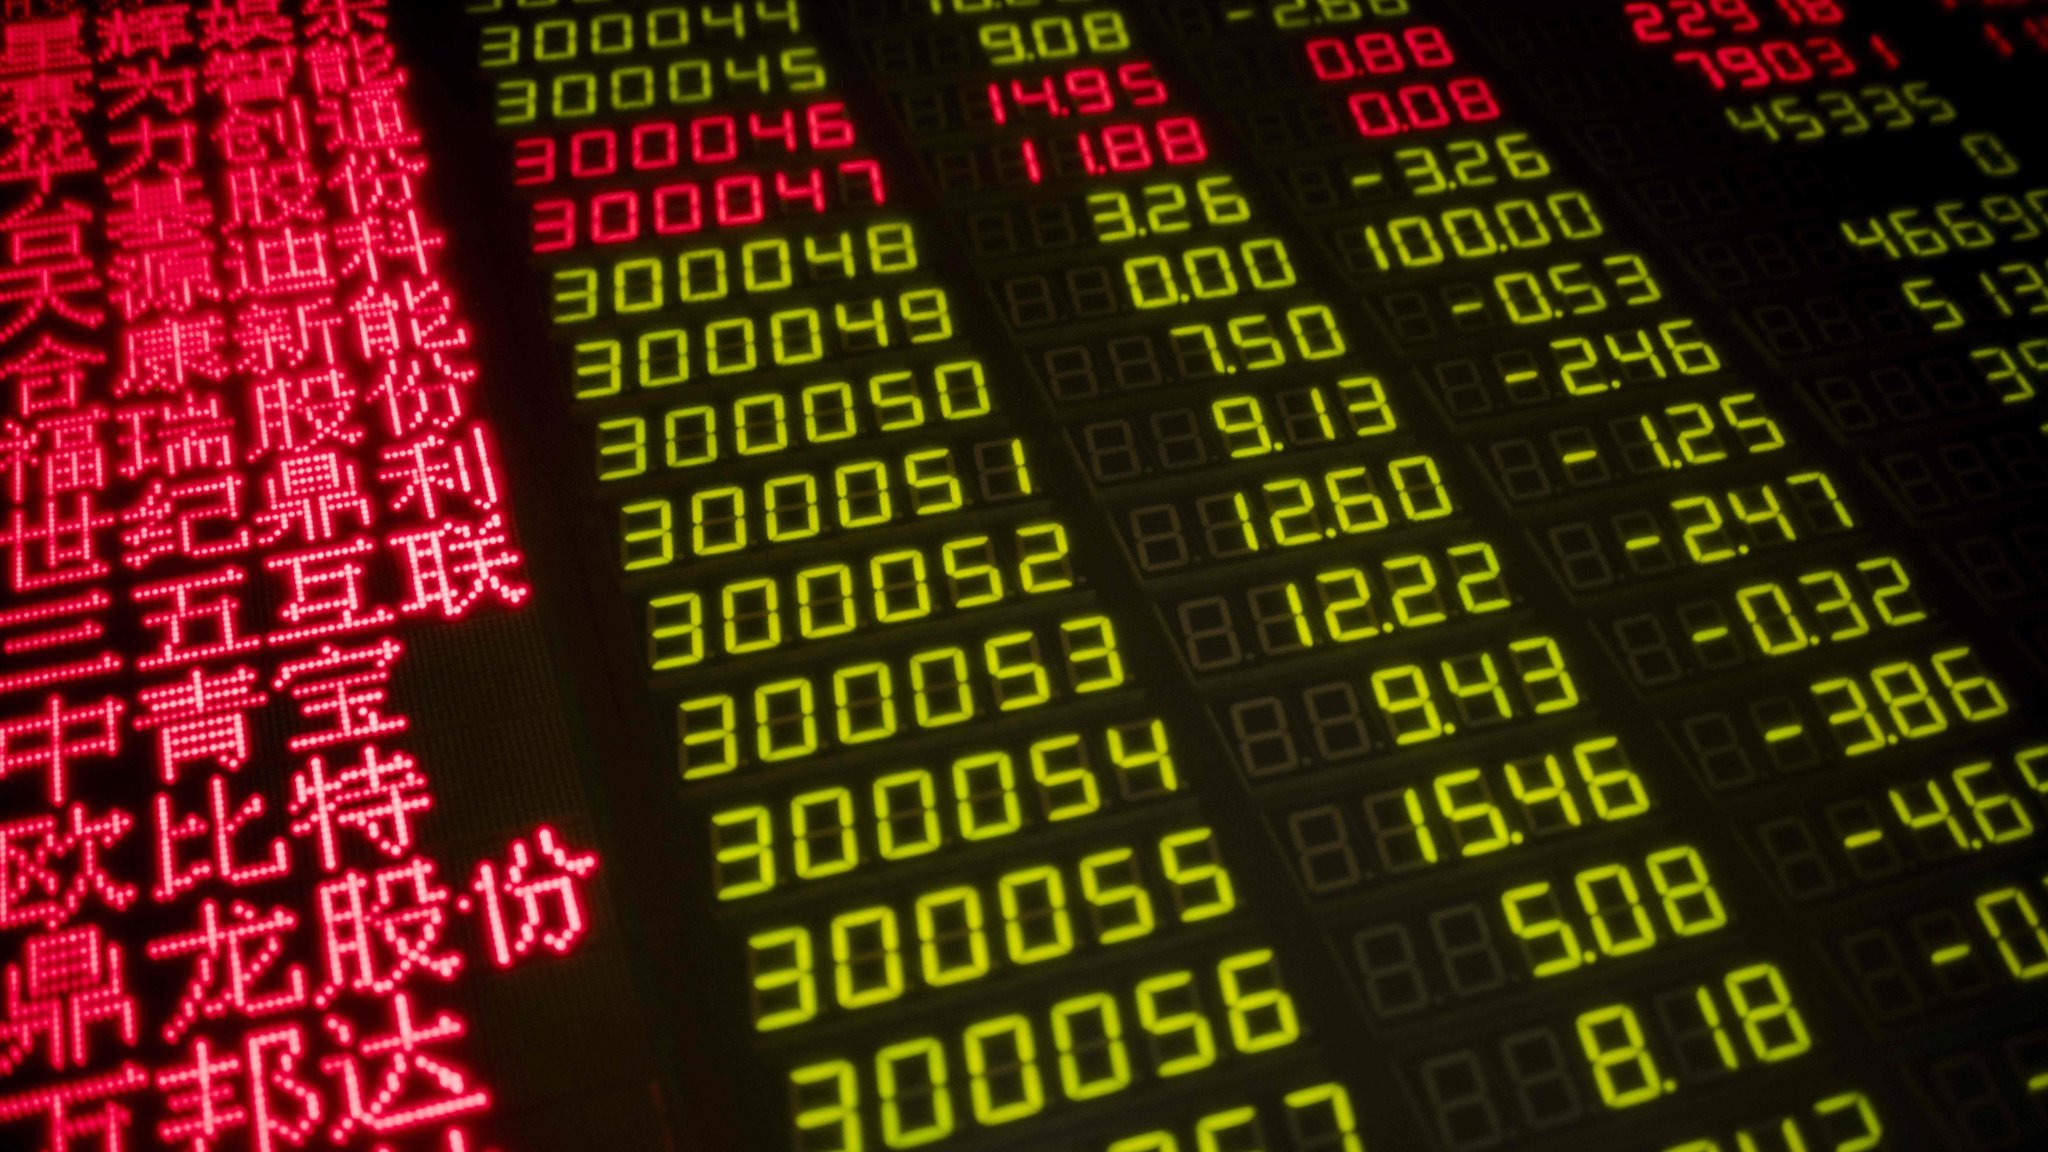 Non-transparent' ETFs set to be a boon for fund managers | Financial